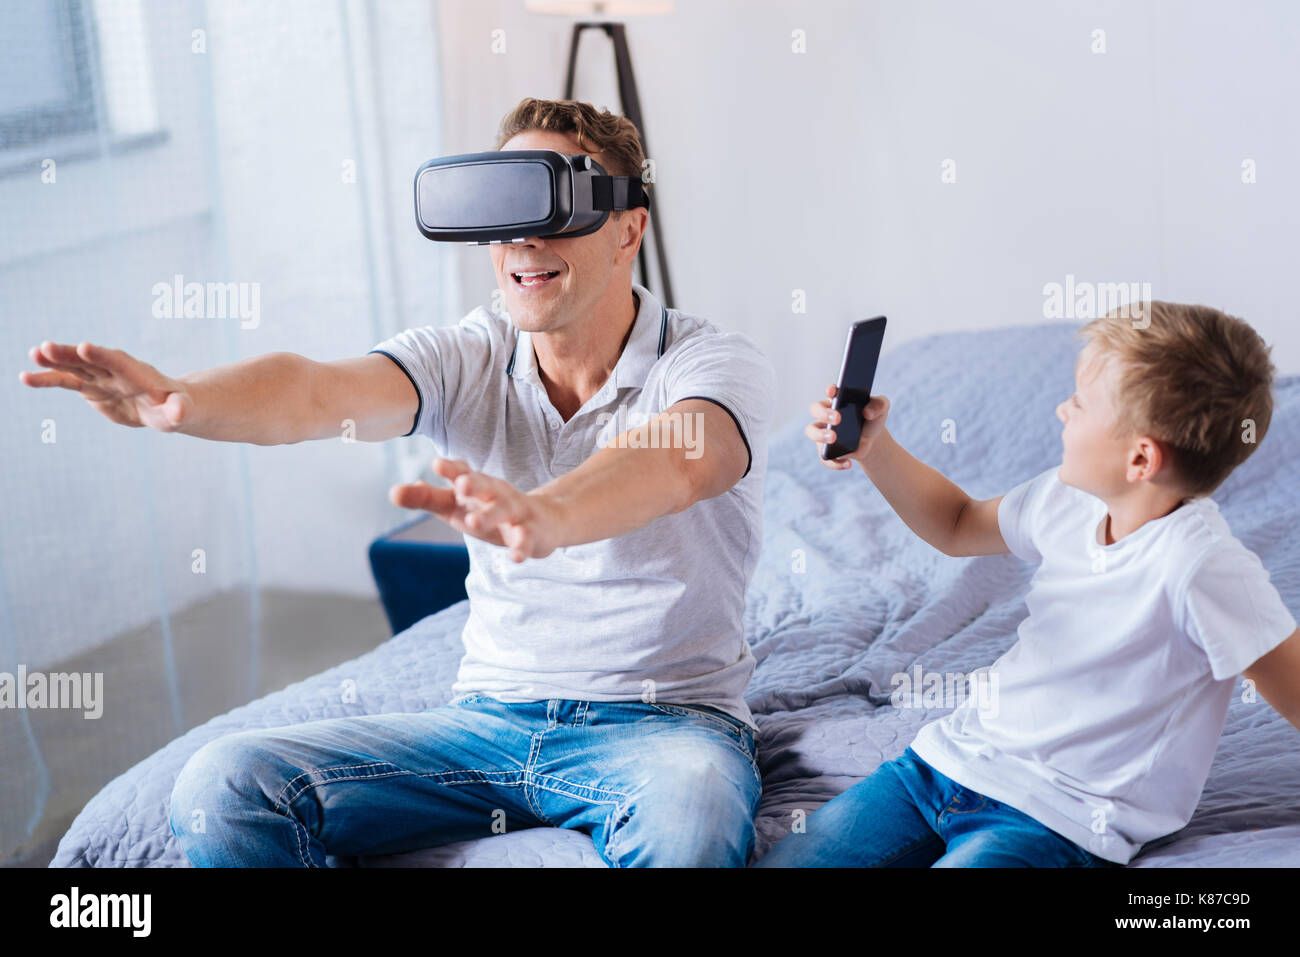 Cheerful boy filming his father testing VR headset - Stock Image